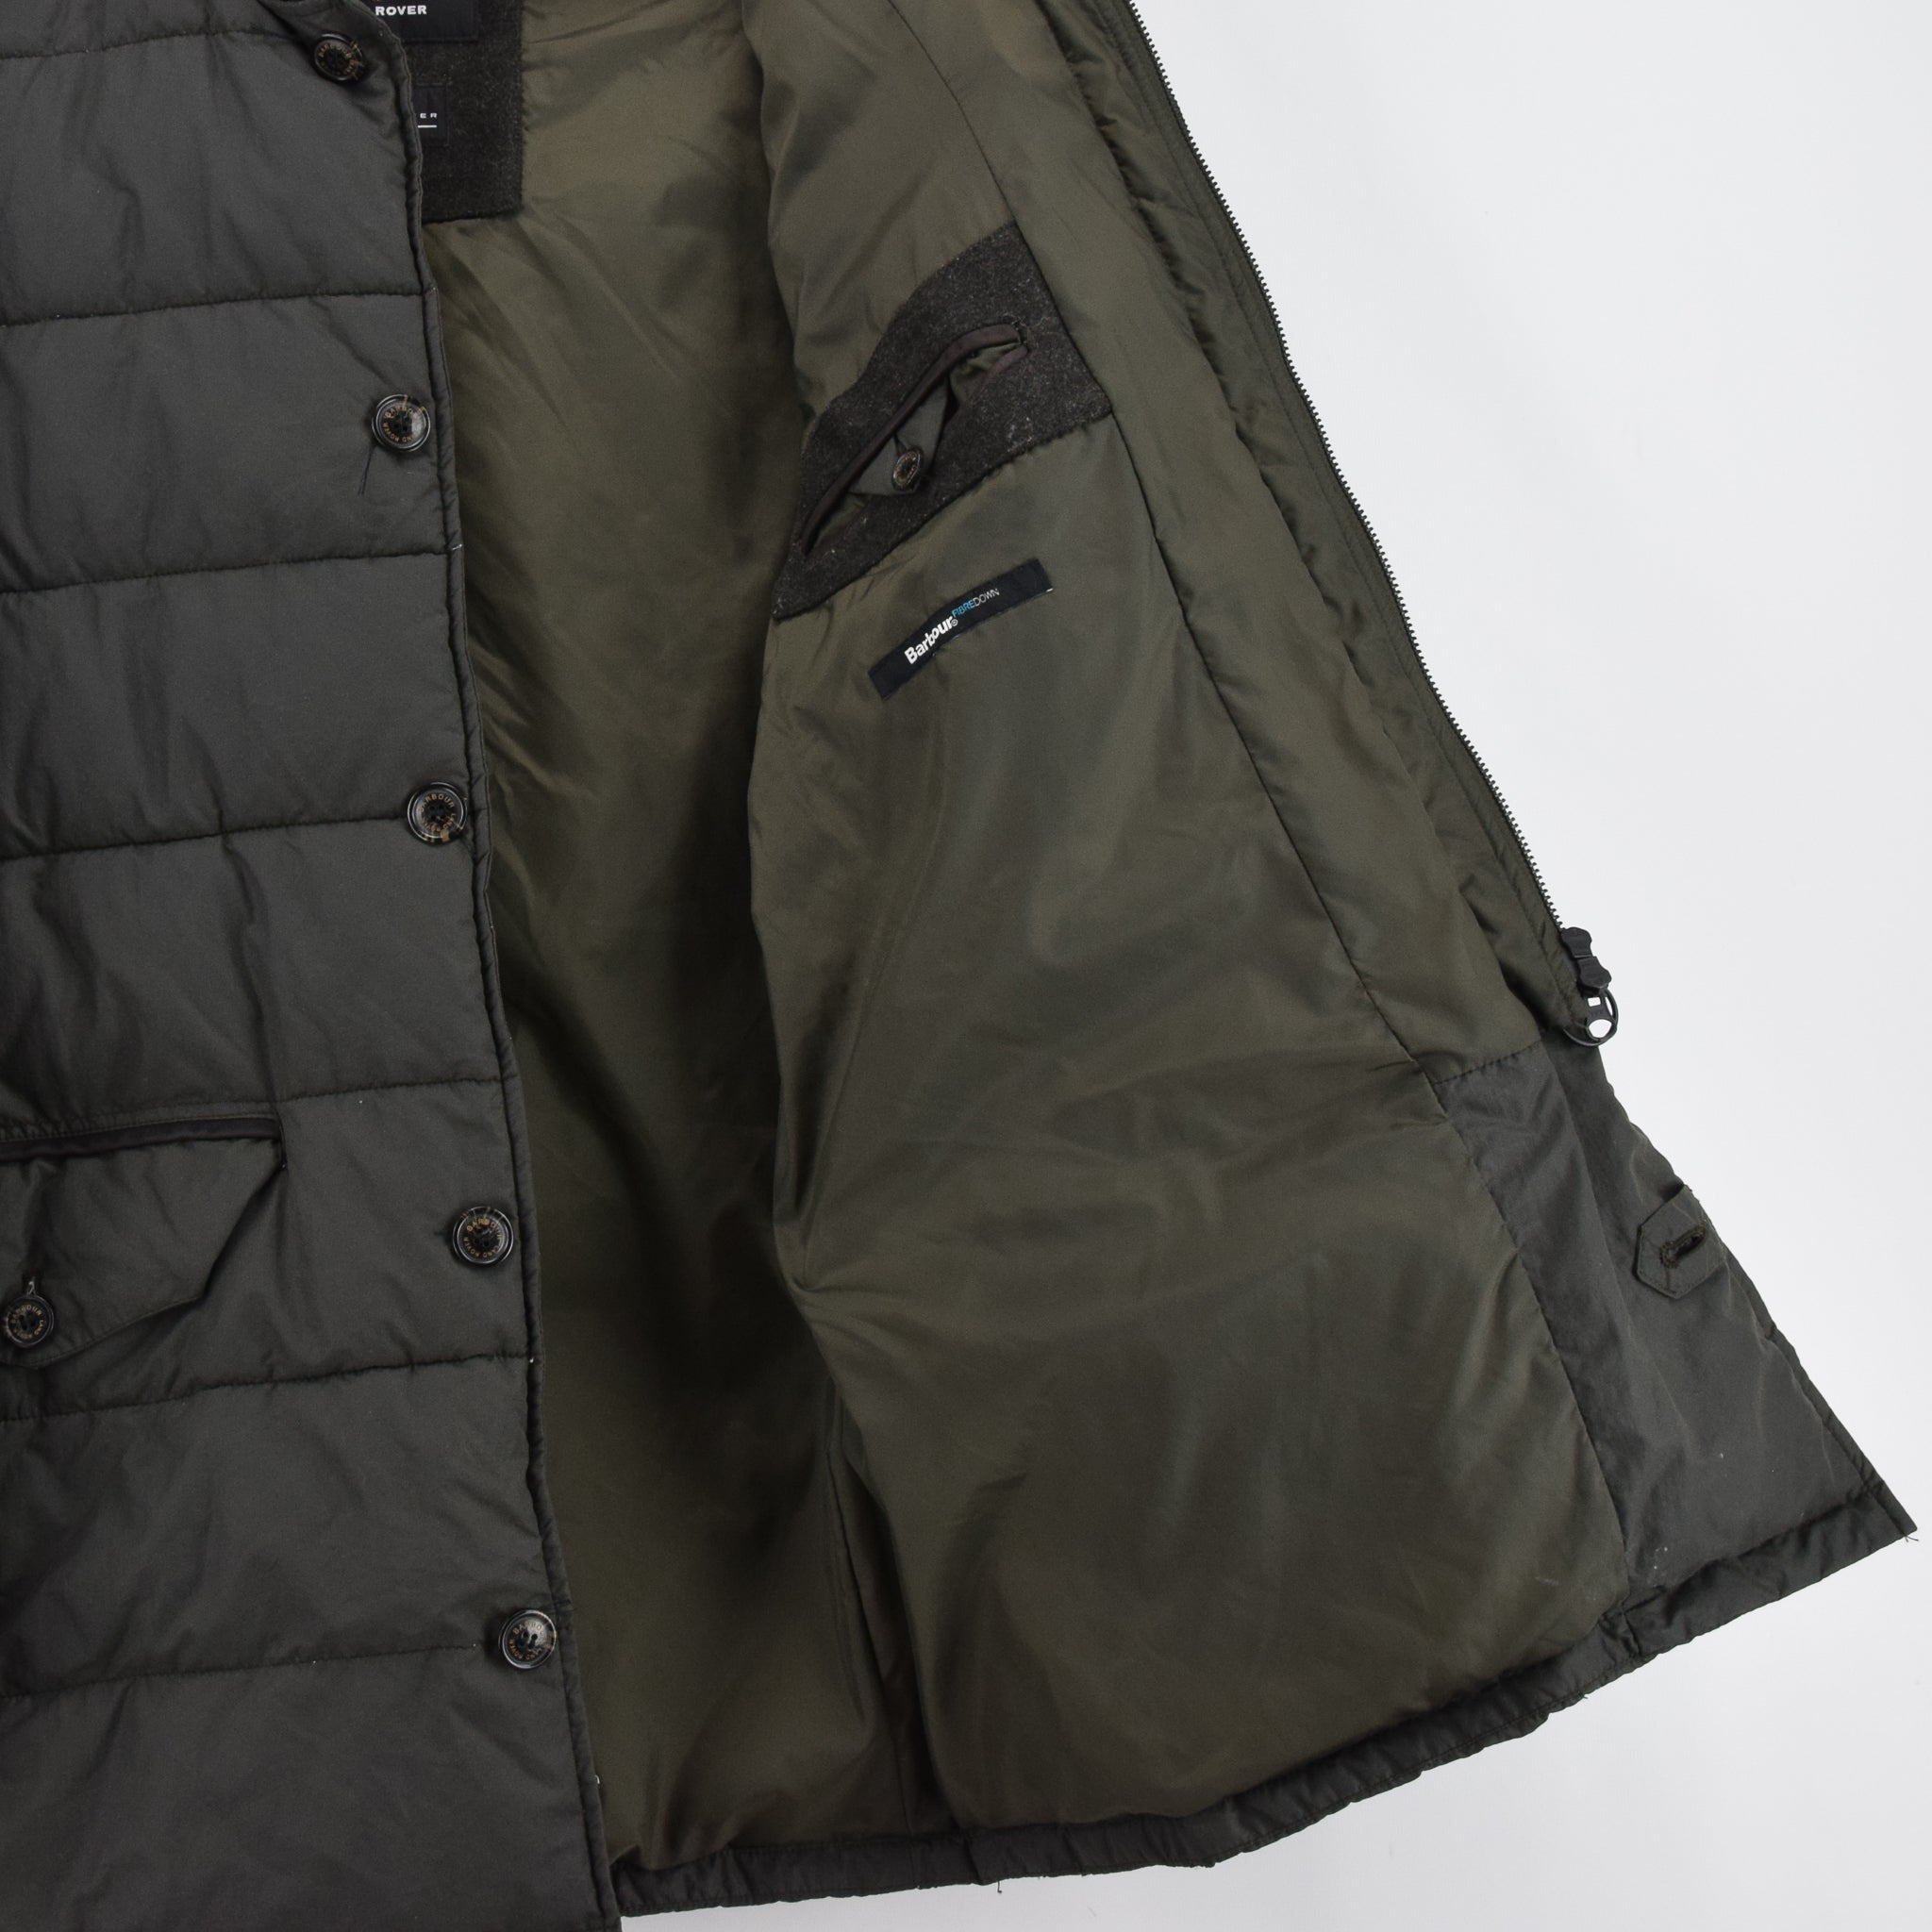 Barbour Land Rover Green Quilted Coat Fibre Down Jacket M lining